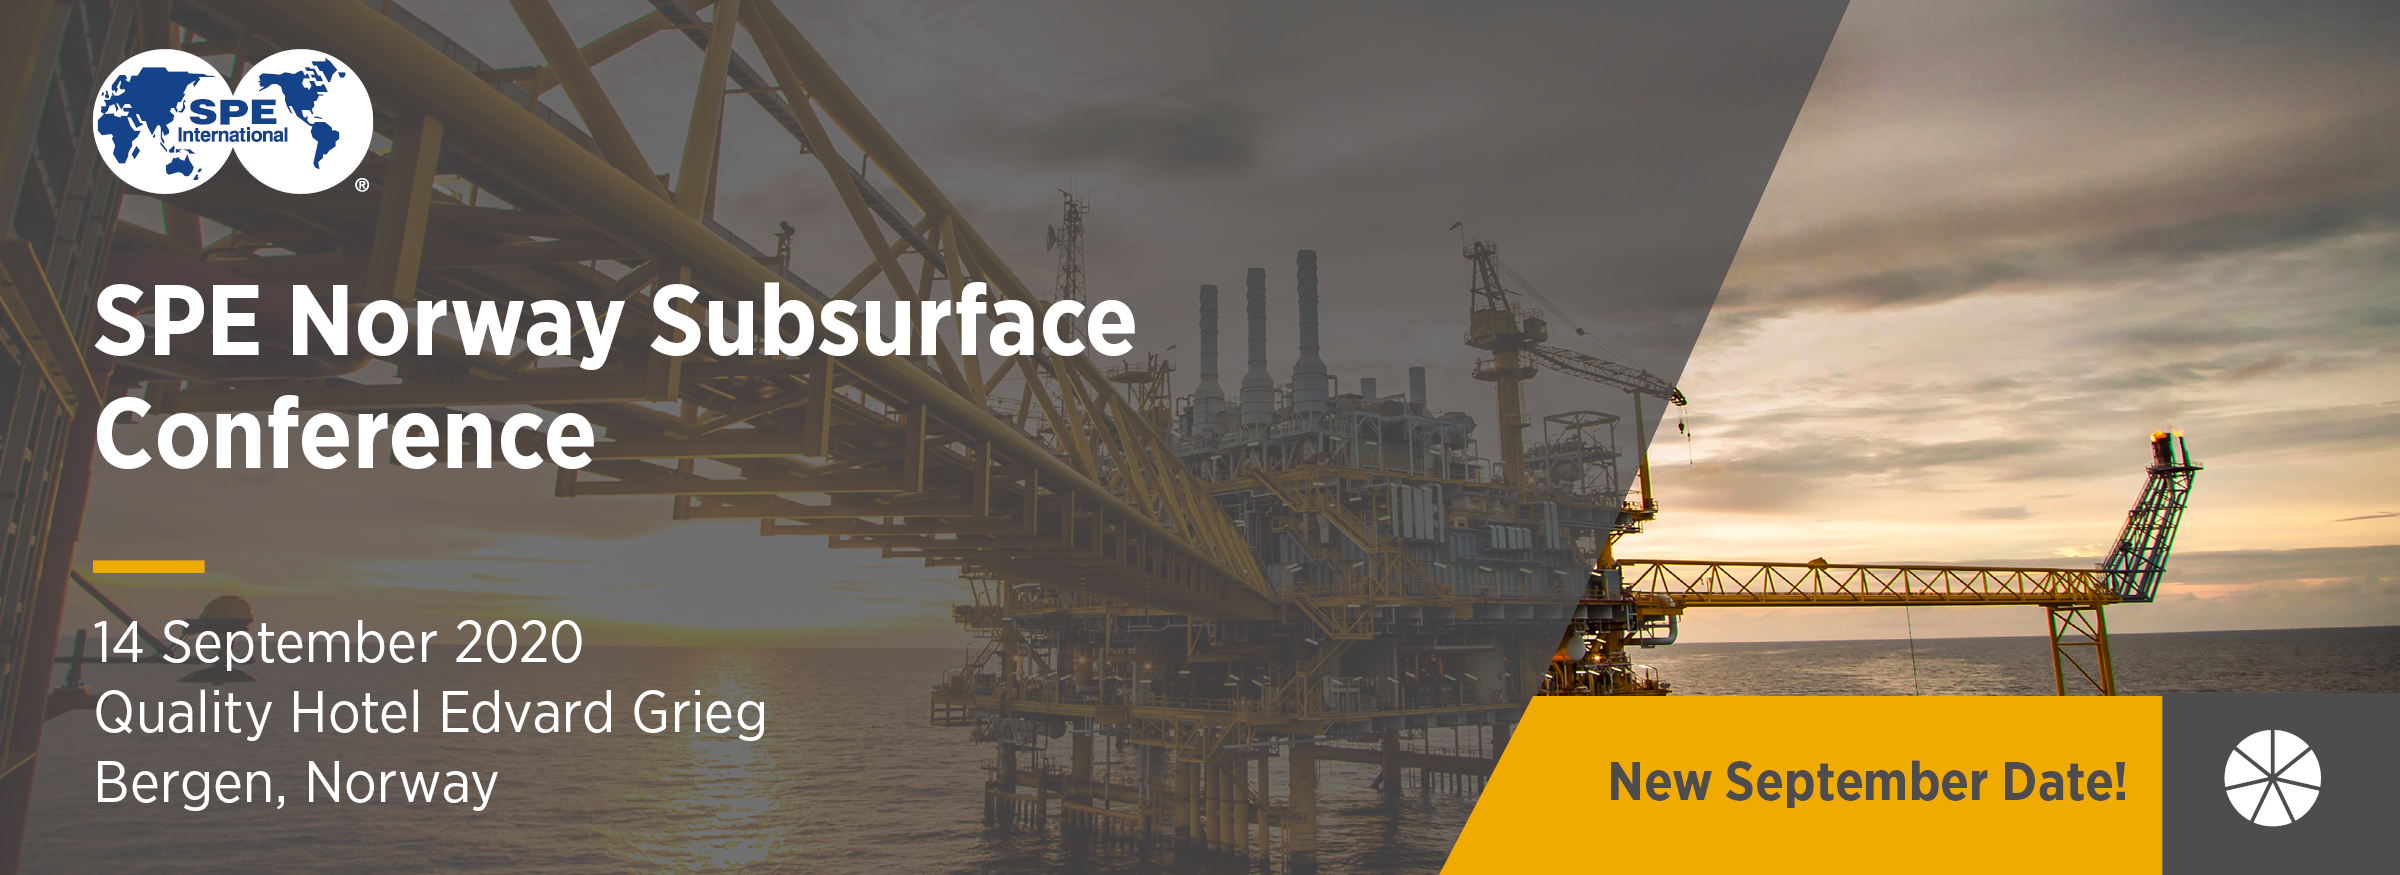 Spe norway subsurface conference 2020 new dates